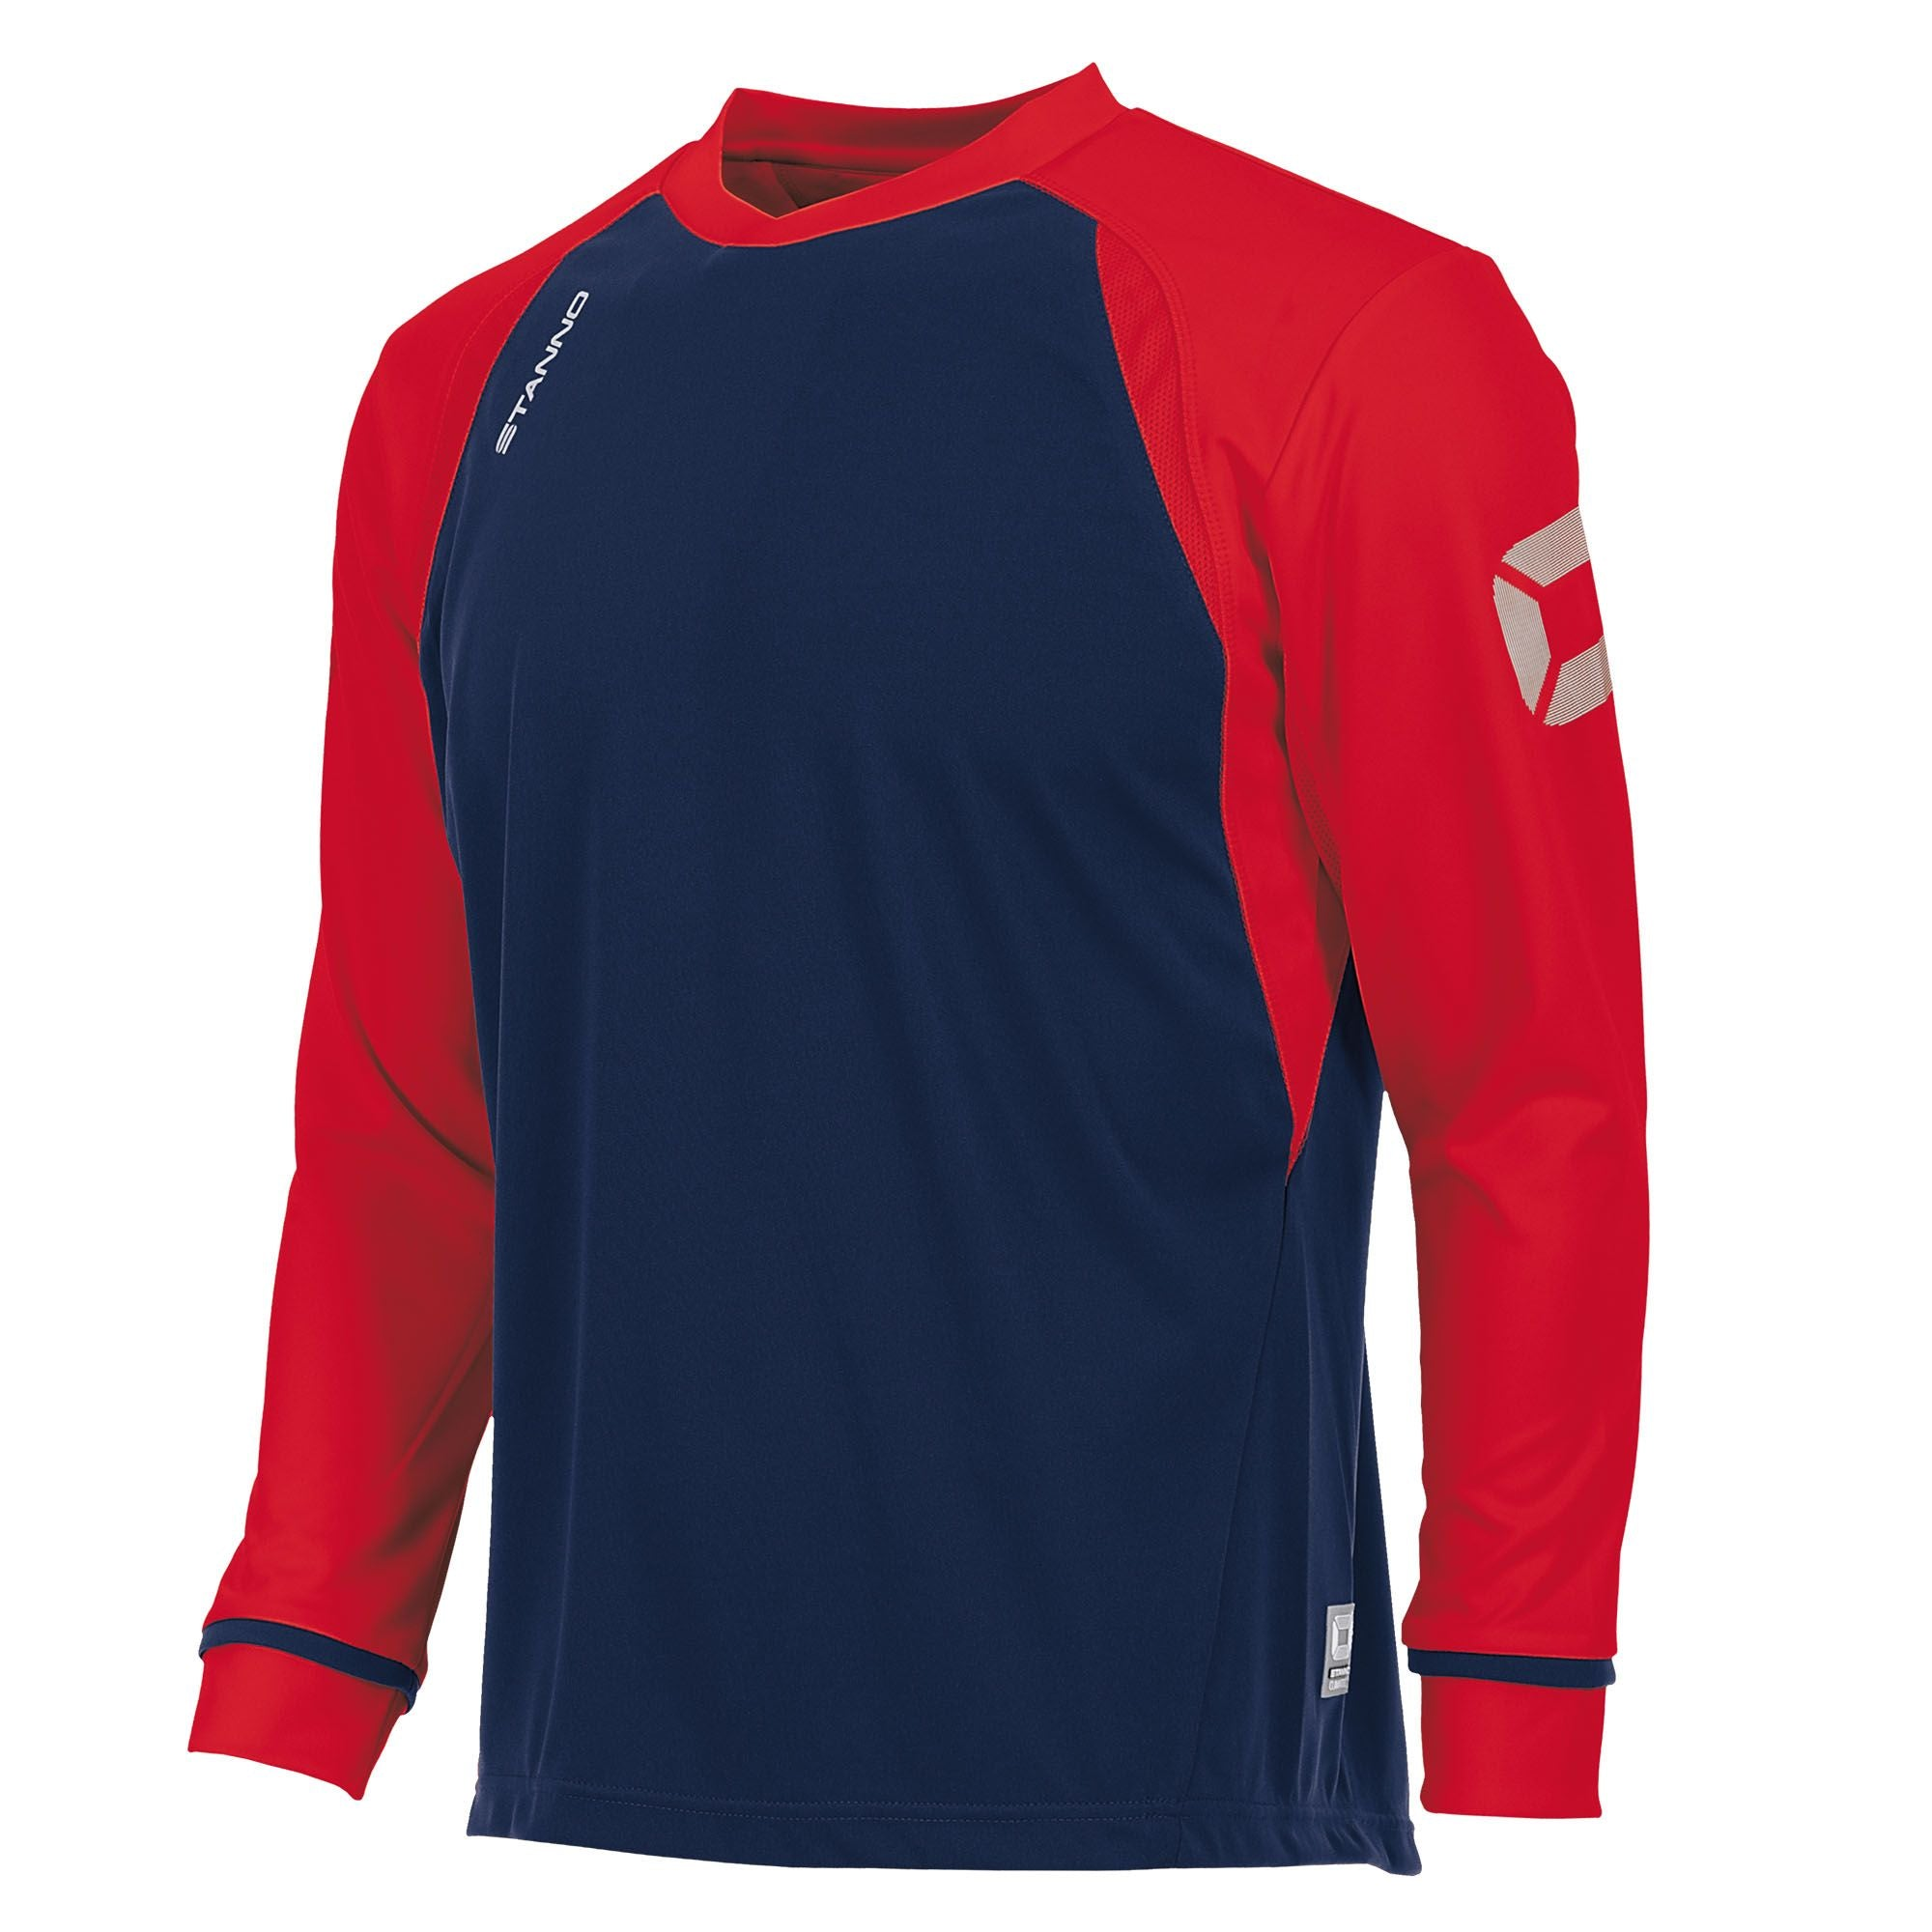 Long sleeved Stanno Liga shirt in navy with contrast red sleeves and collar, Stadium logo on the sleeve.